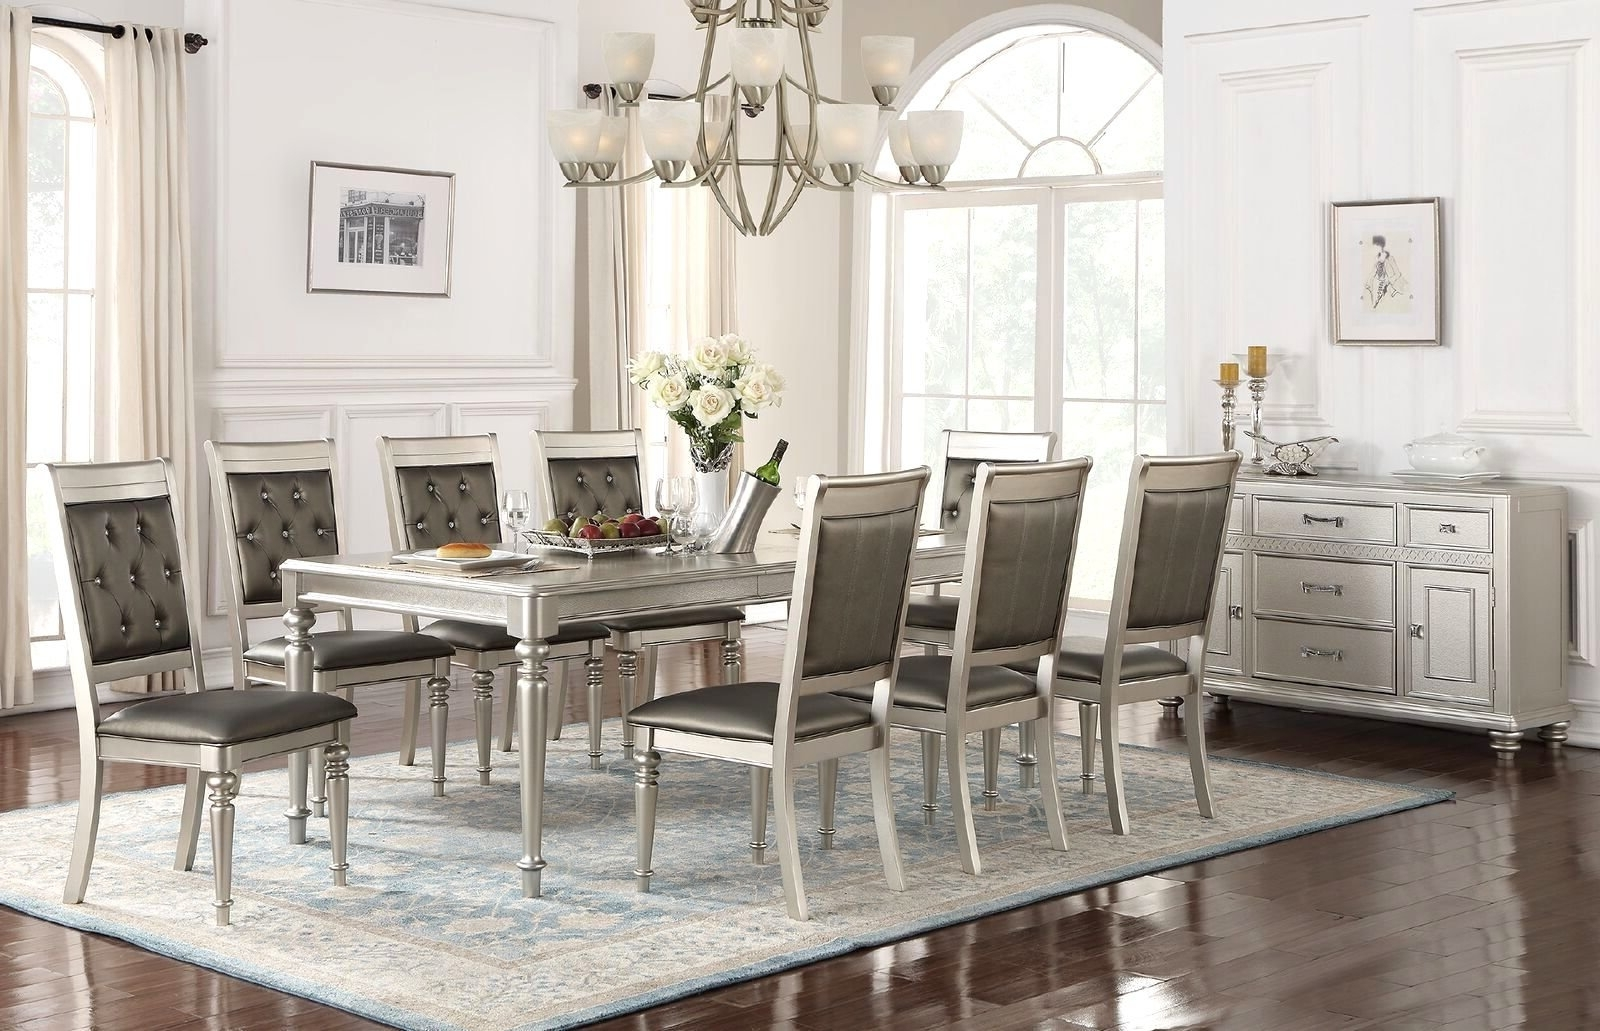 Rocco 7 Piece Extension Dining Sets Inside Recent 9 Piece Dining Sets You'll Love (View 13 of 25)